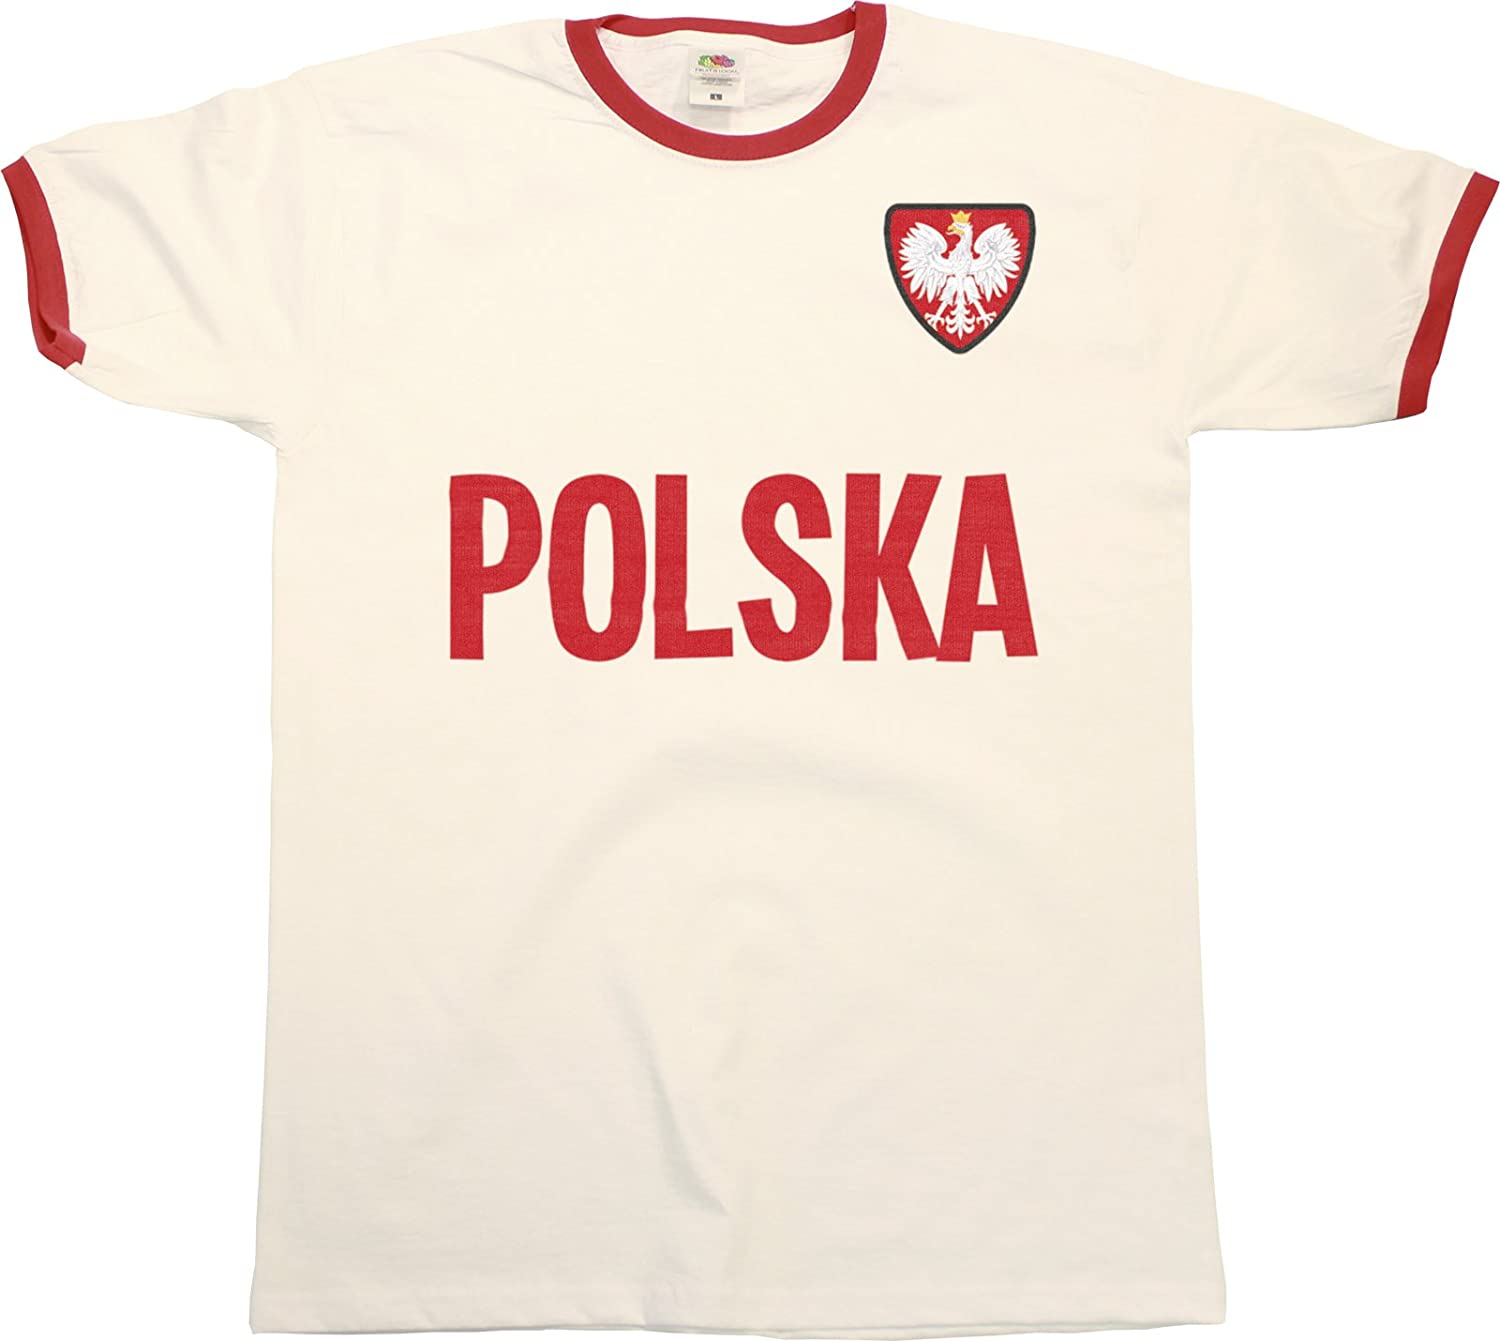 Mens Polska Poland Pologne Name Hommes Ringer Retro T-Shirt Sports Football Patriotic